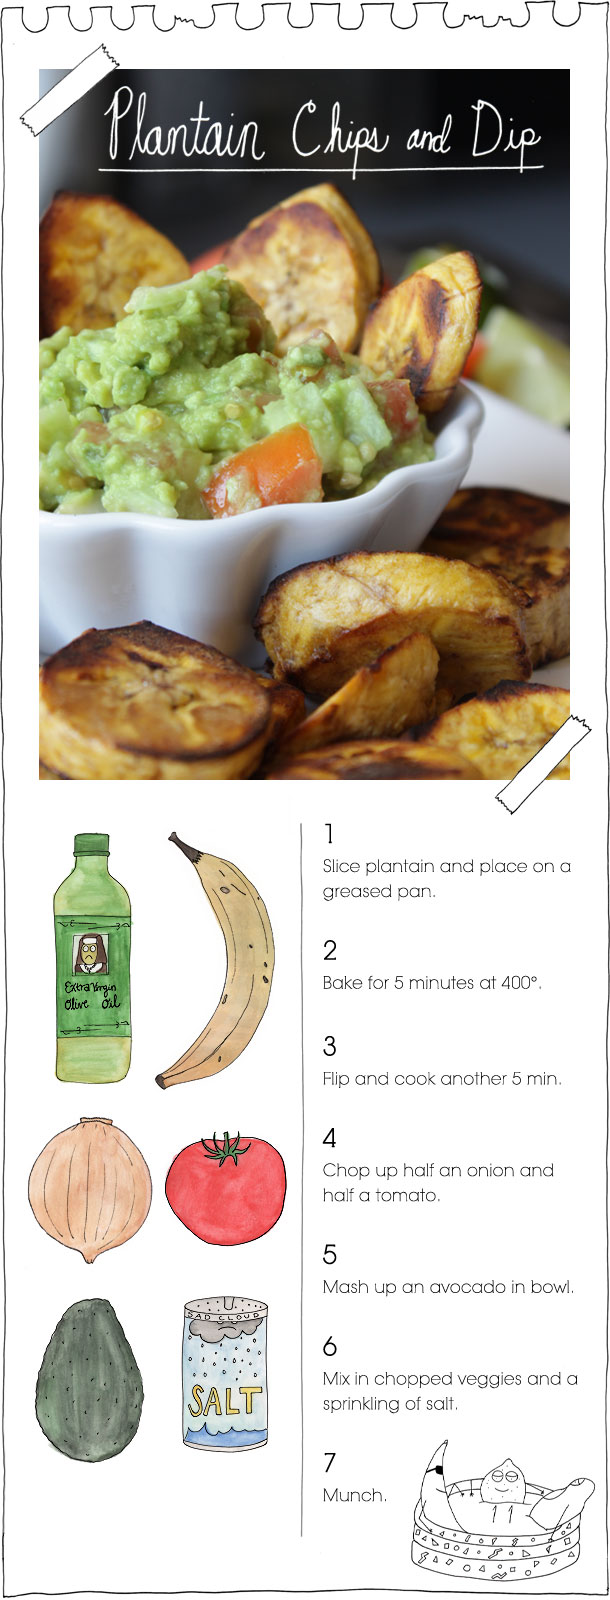 The Vegan Stoner's Plantain Chips and Dip